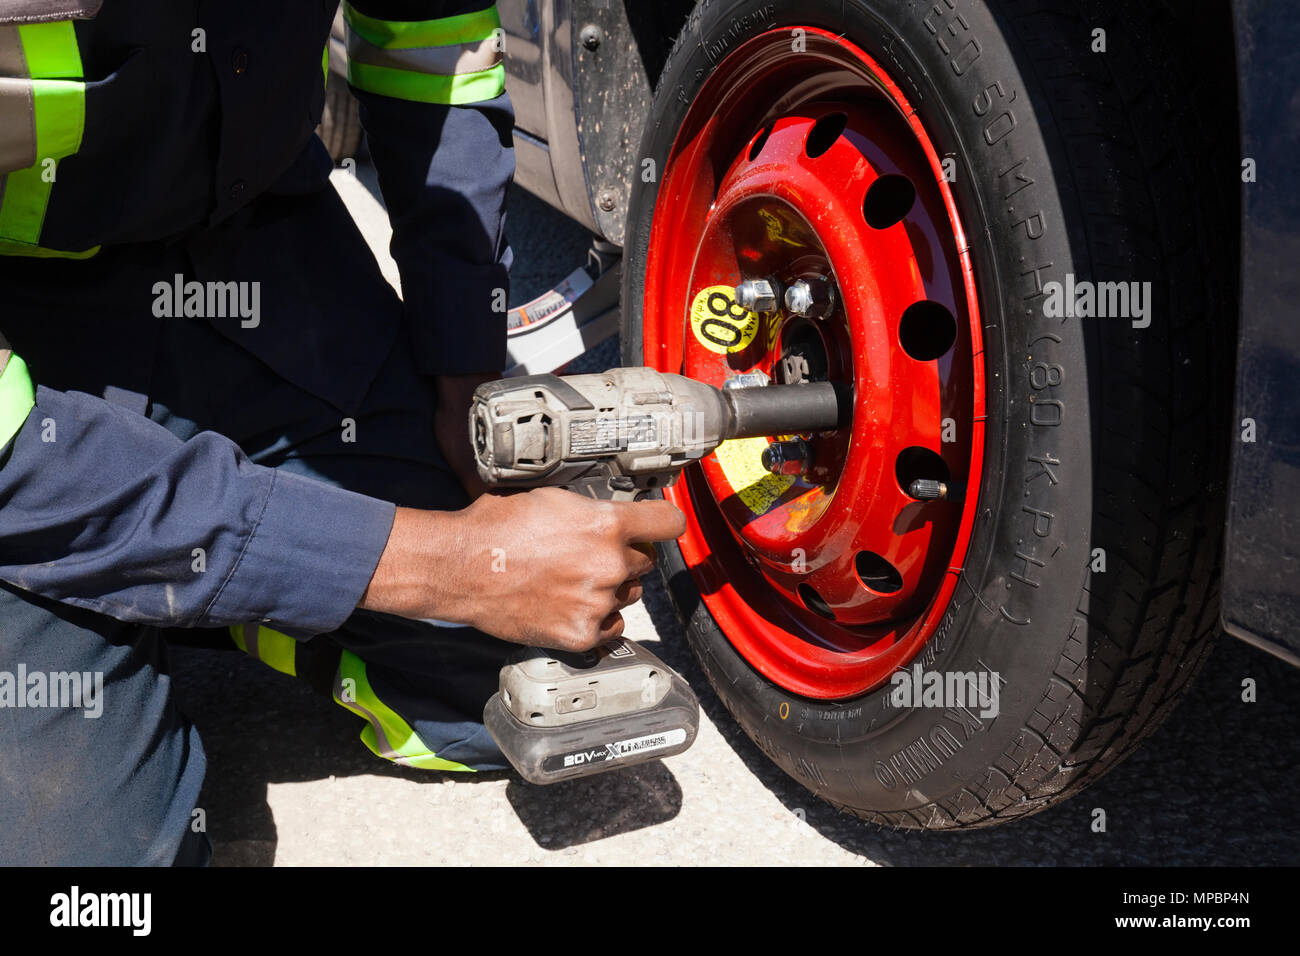 A service technician or person installing a spare tire or tyre using an impact wrench. - Stock Image